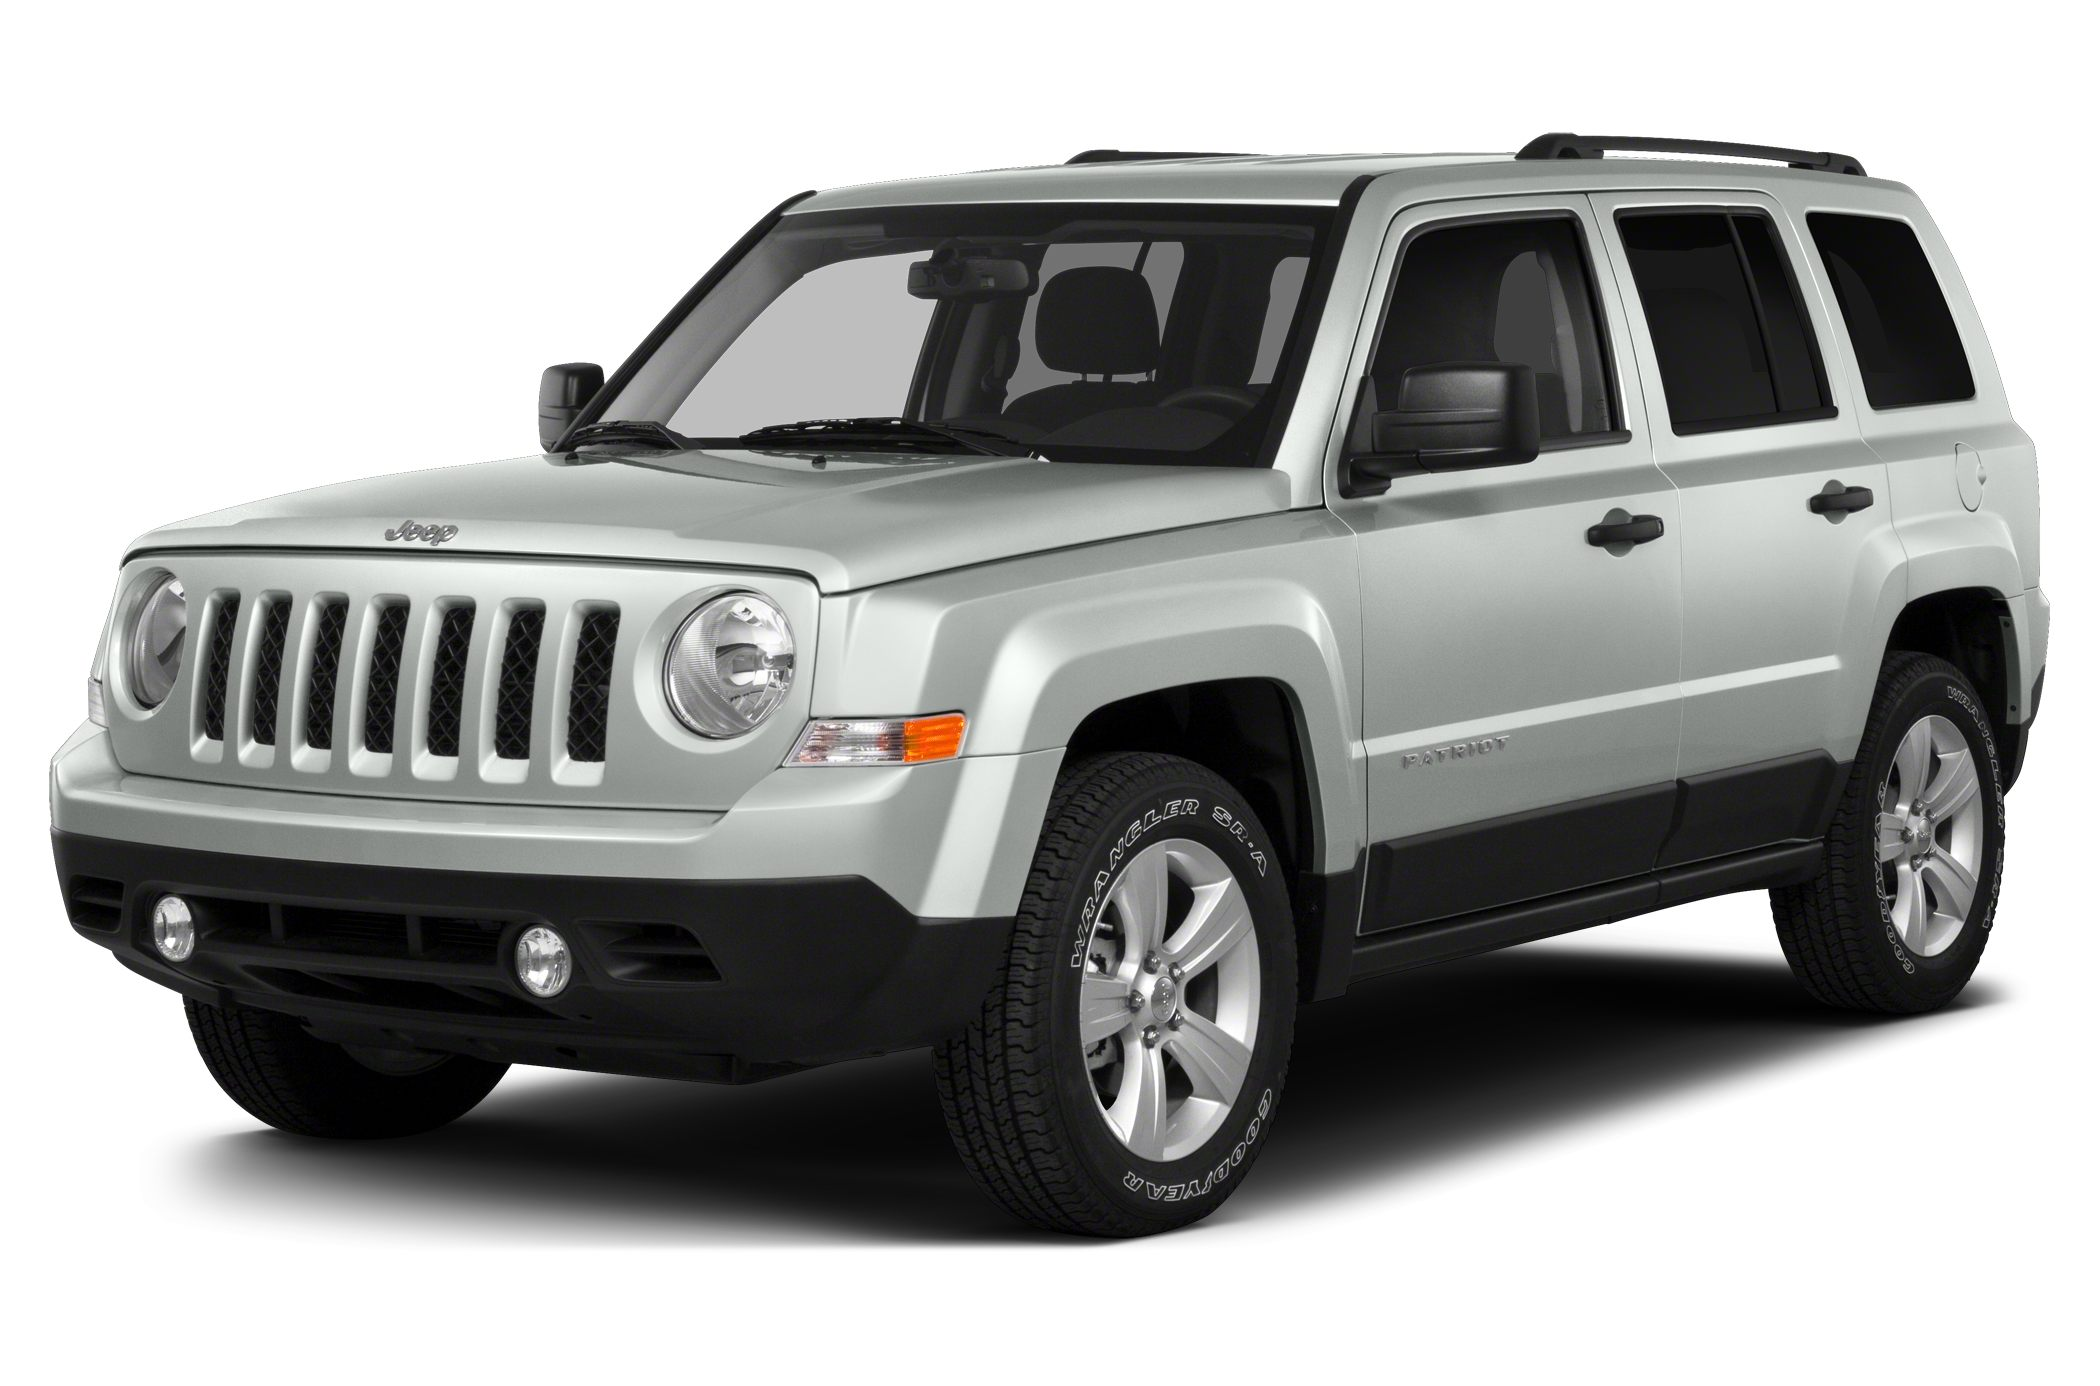 2015 Jeep Patriot Sport SUV for sale in Wilsonville for $26,280 with 0 miles.